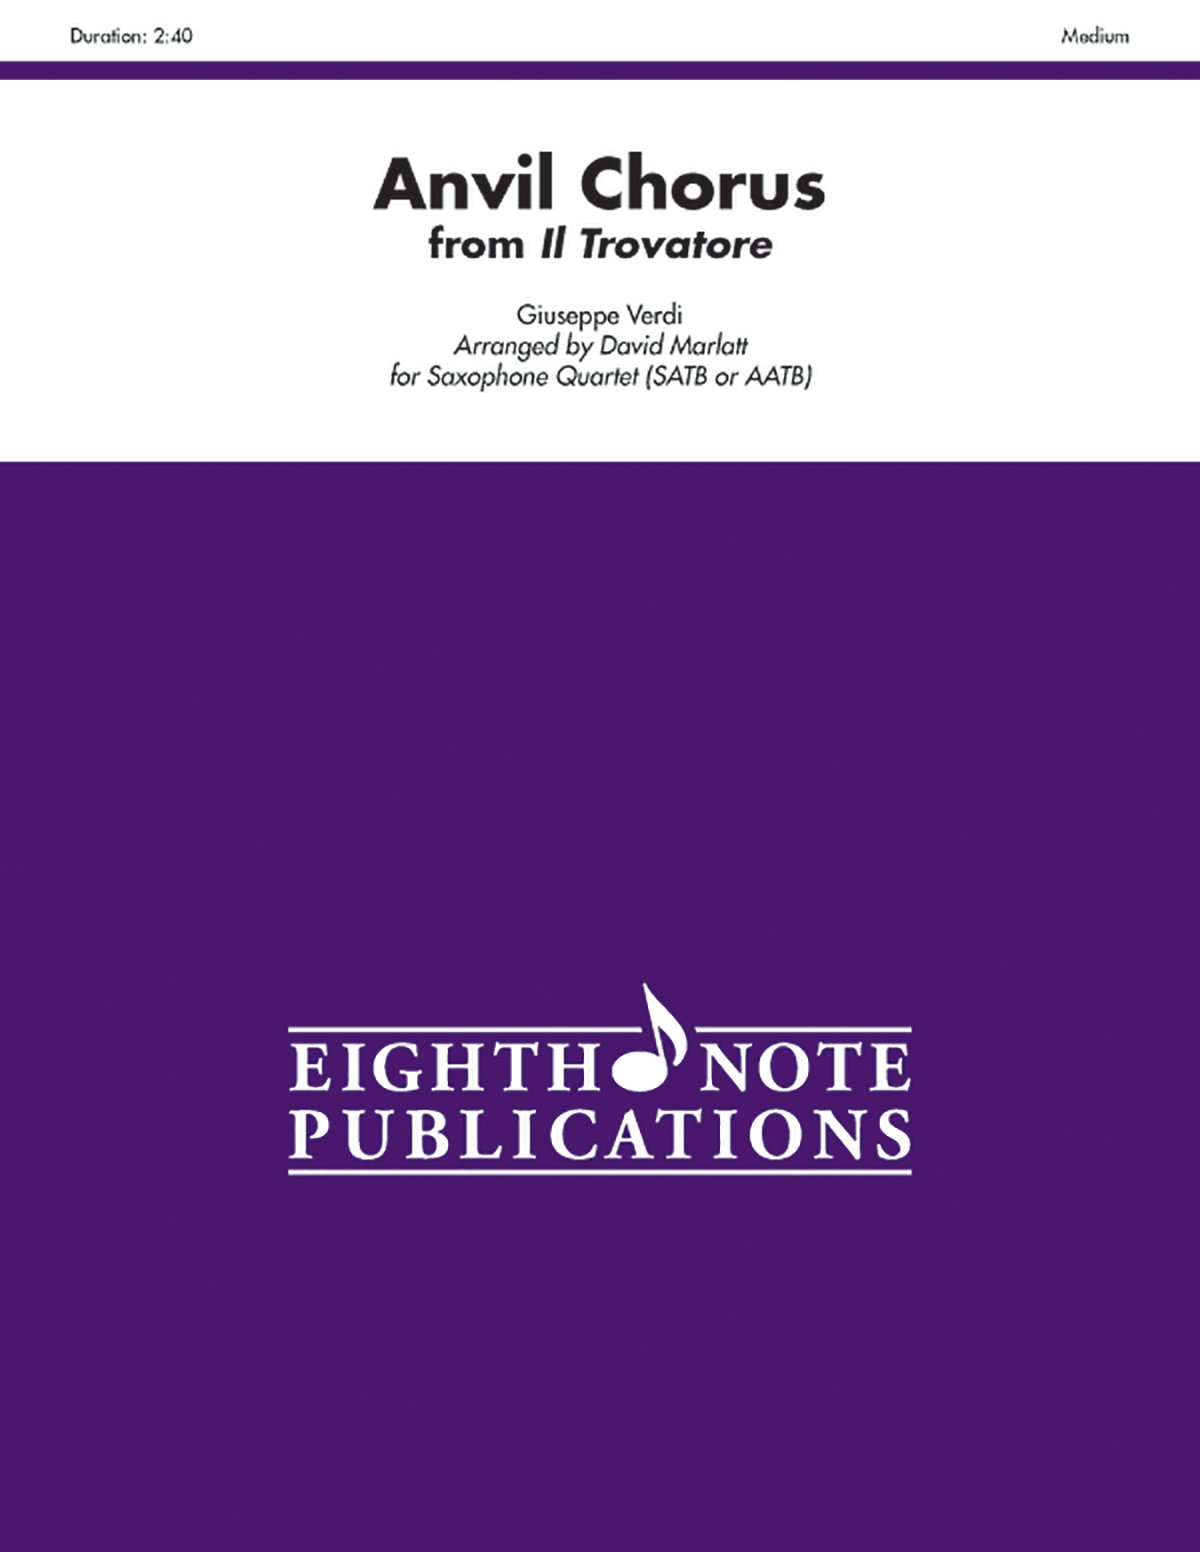 Download Anvil Chorus for Saxophone Quartet (SATB or AATB) (From Il Trovatore) pdf